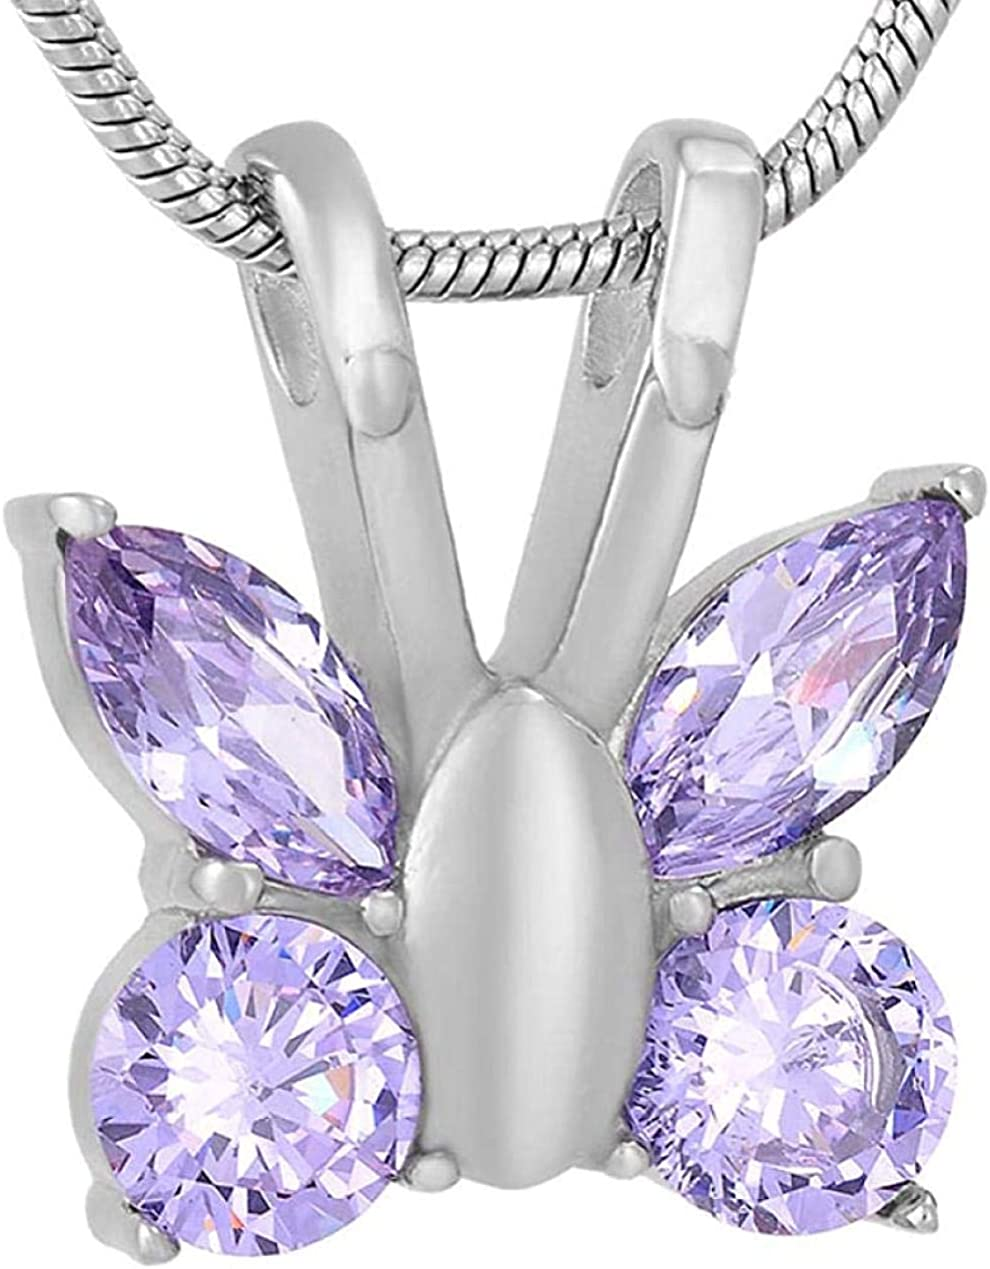 Memorial Cremation Cremation Jewellery Crystal Purple Butterfly Shape Fashion Memorial Jewelry Keepsake Urn Necklace Cremation Jewelry Ashes Urns Cremation Keepsake Memorial